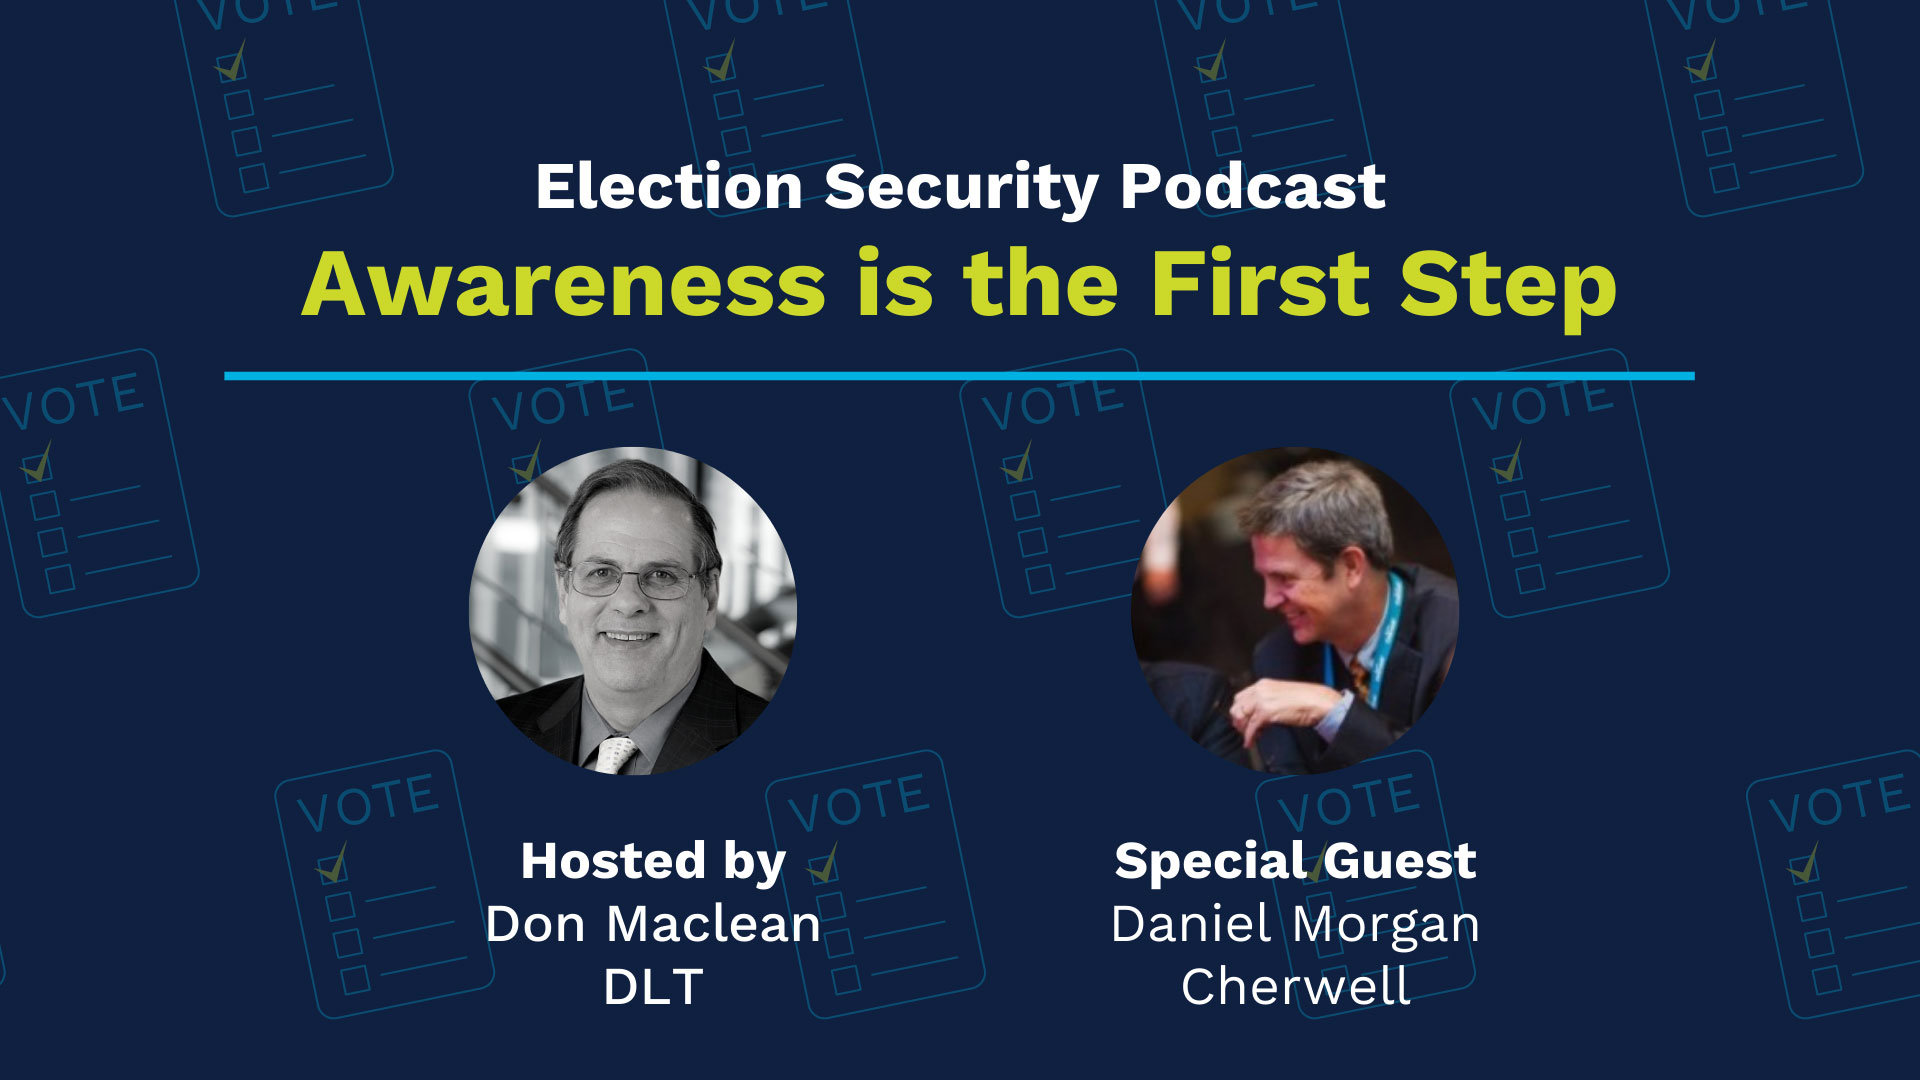 Election Security Podacast: Awareness is the first step